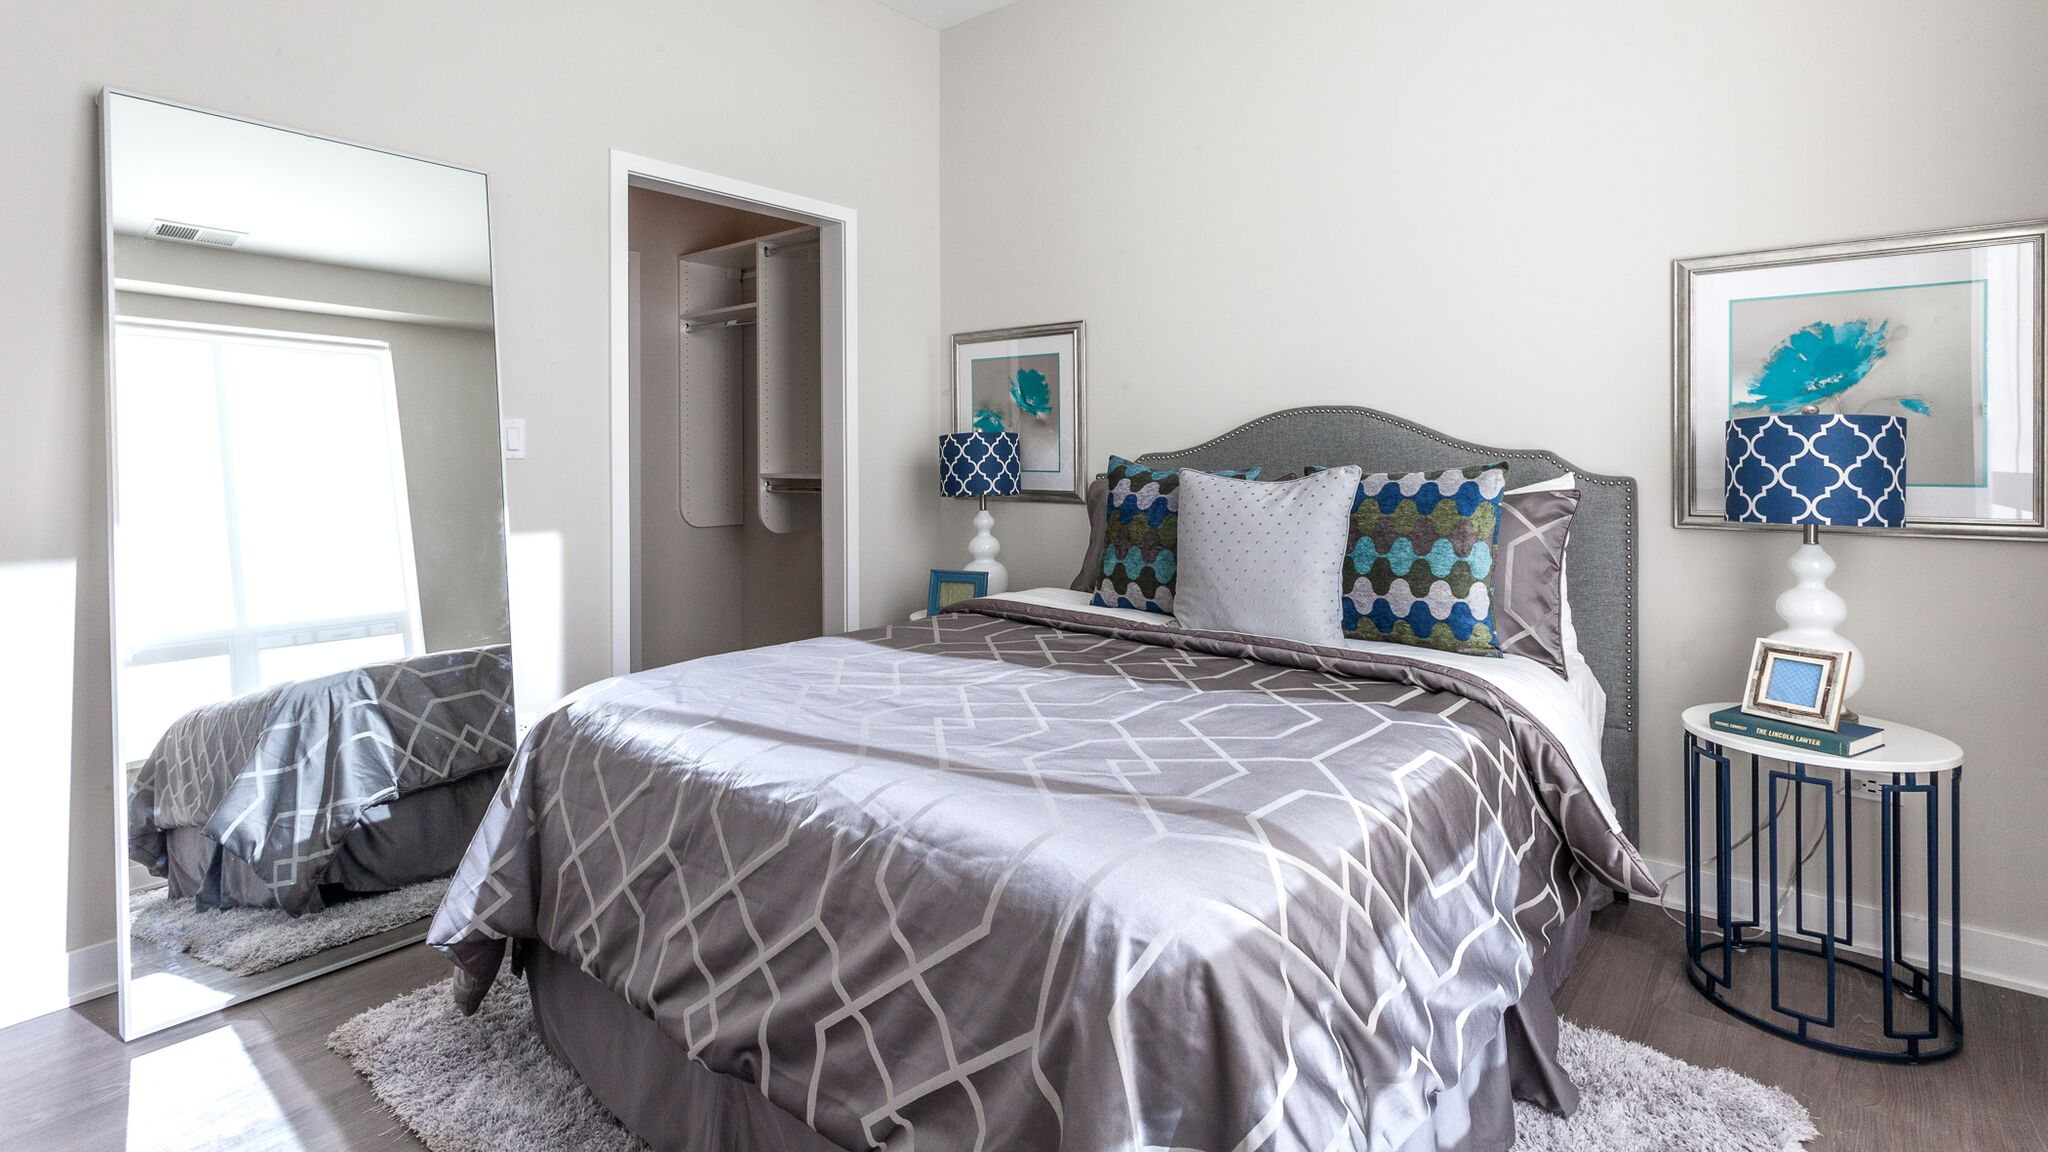 Large apartment bedroom with king size bed grey linens grey fabric